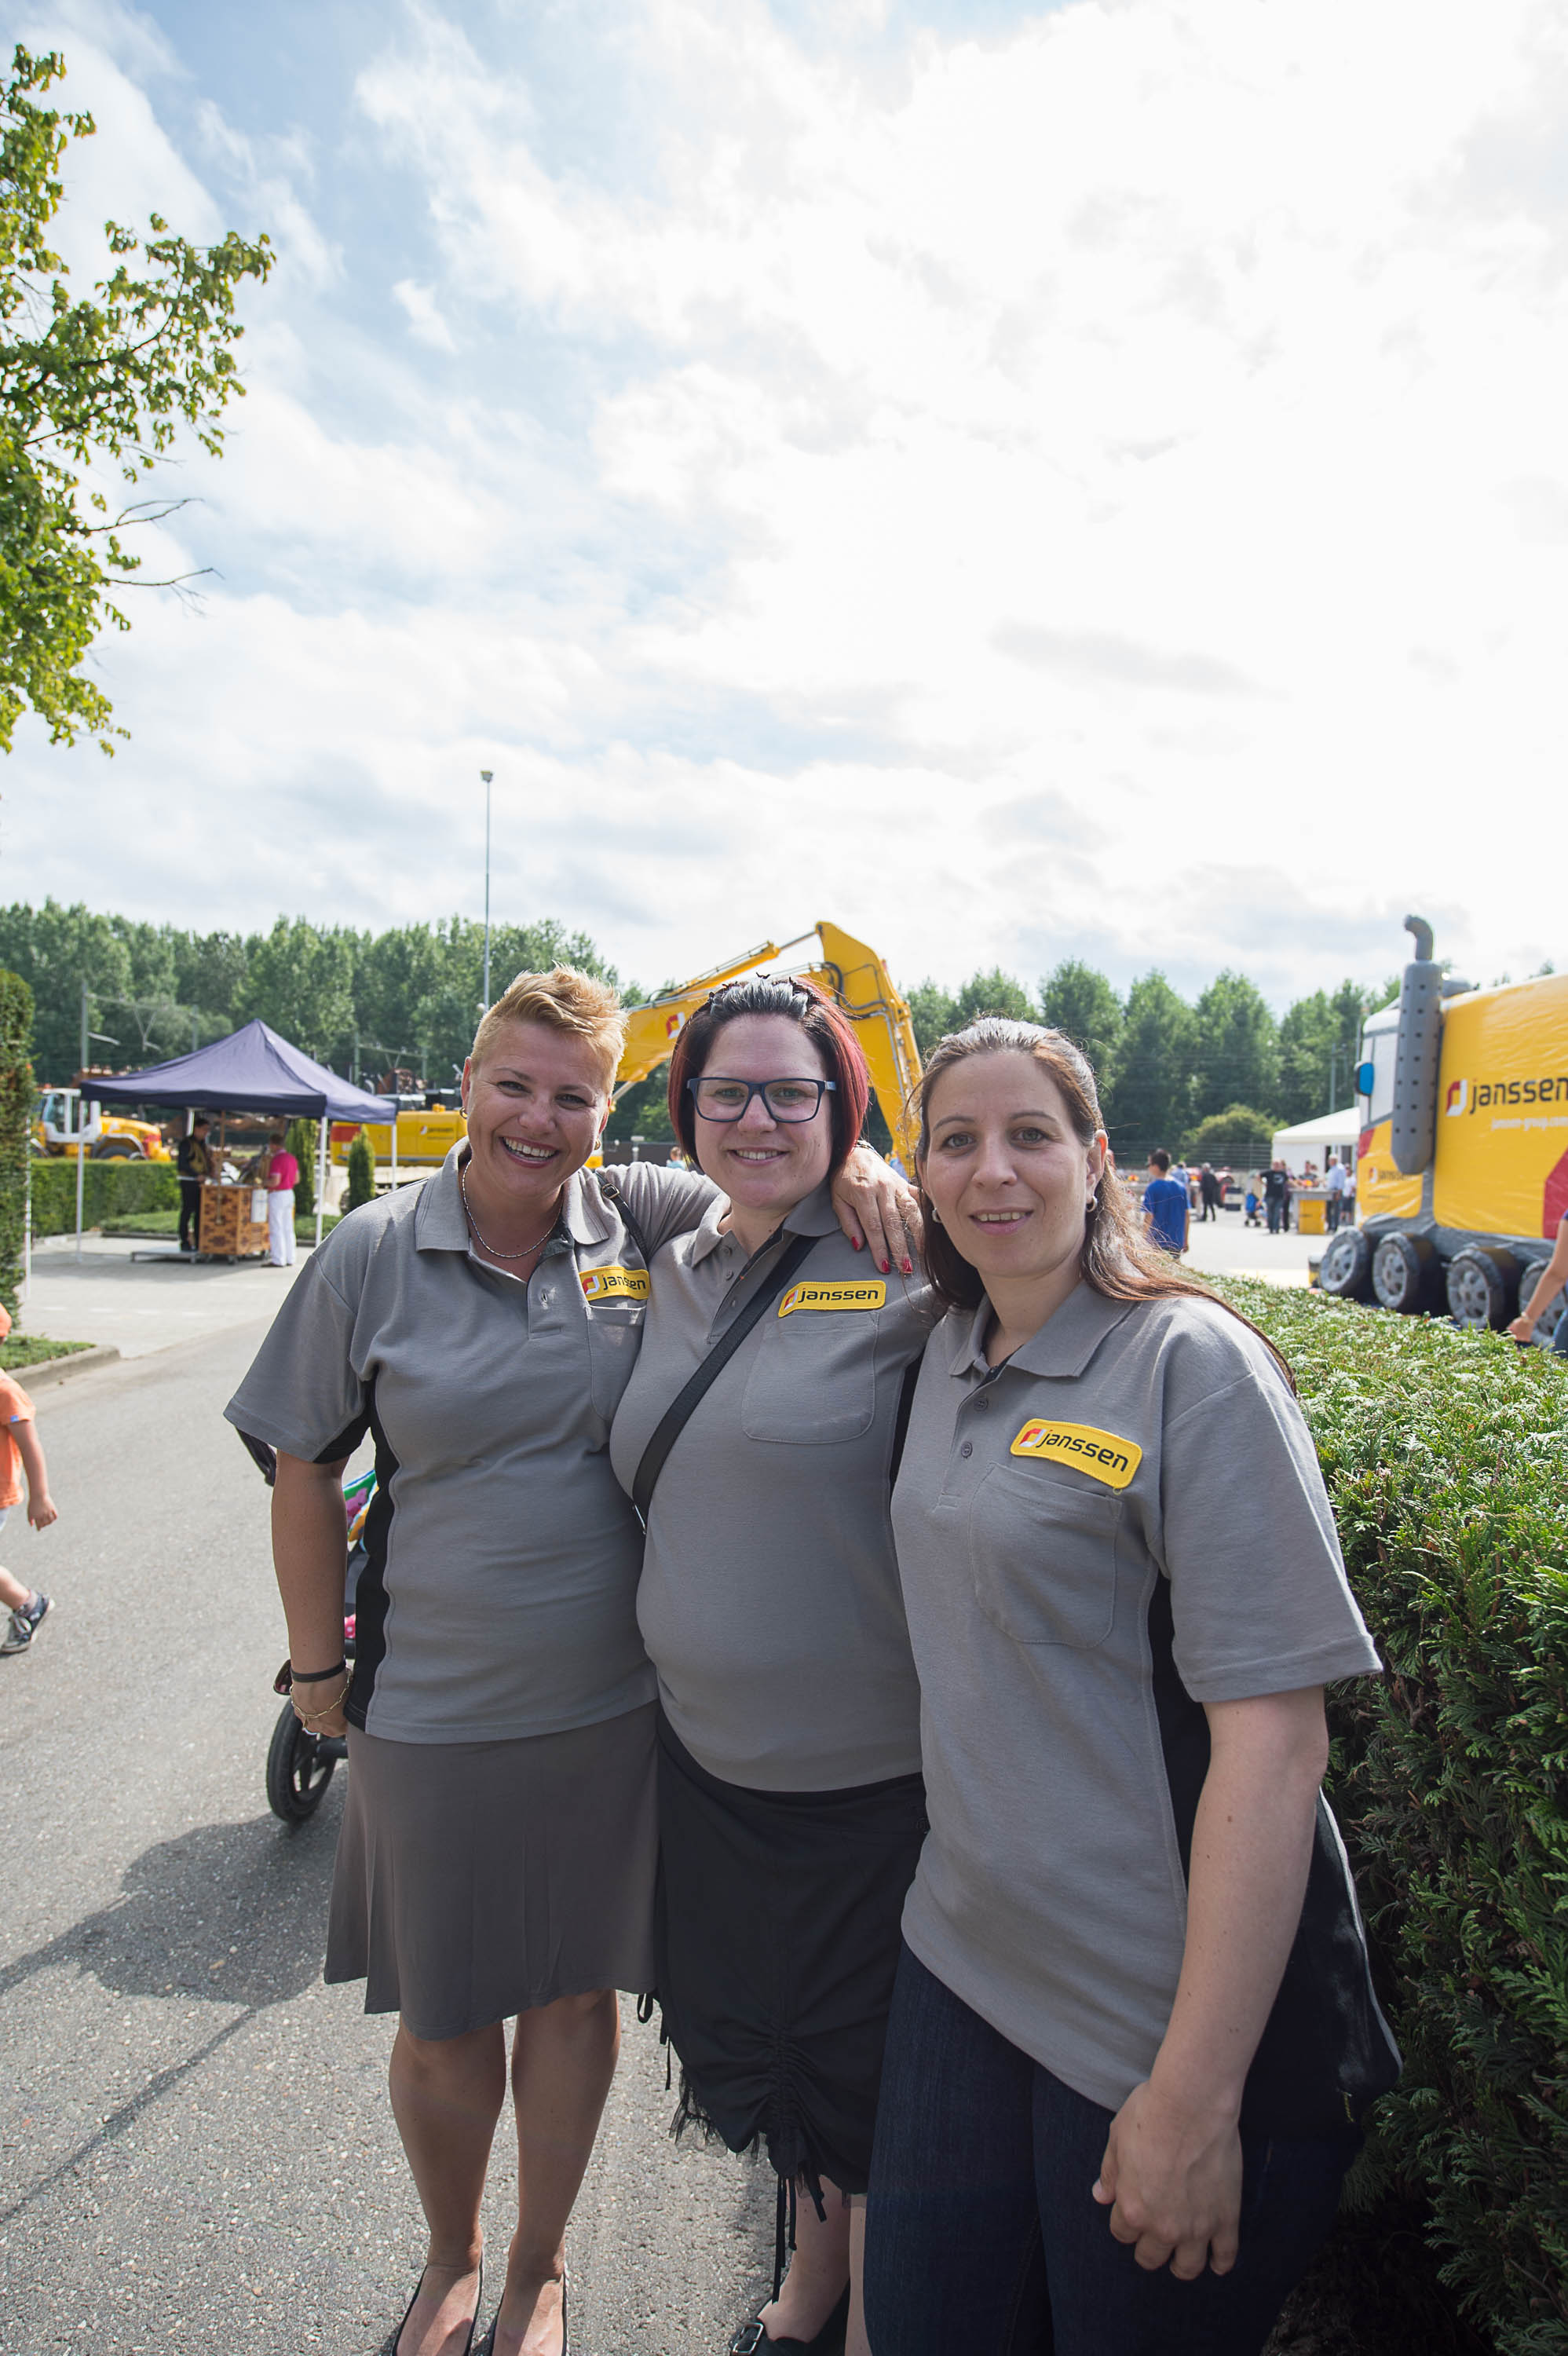 20150829Janssen-Group-Open-Dag-_PBK9179